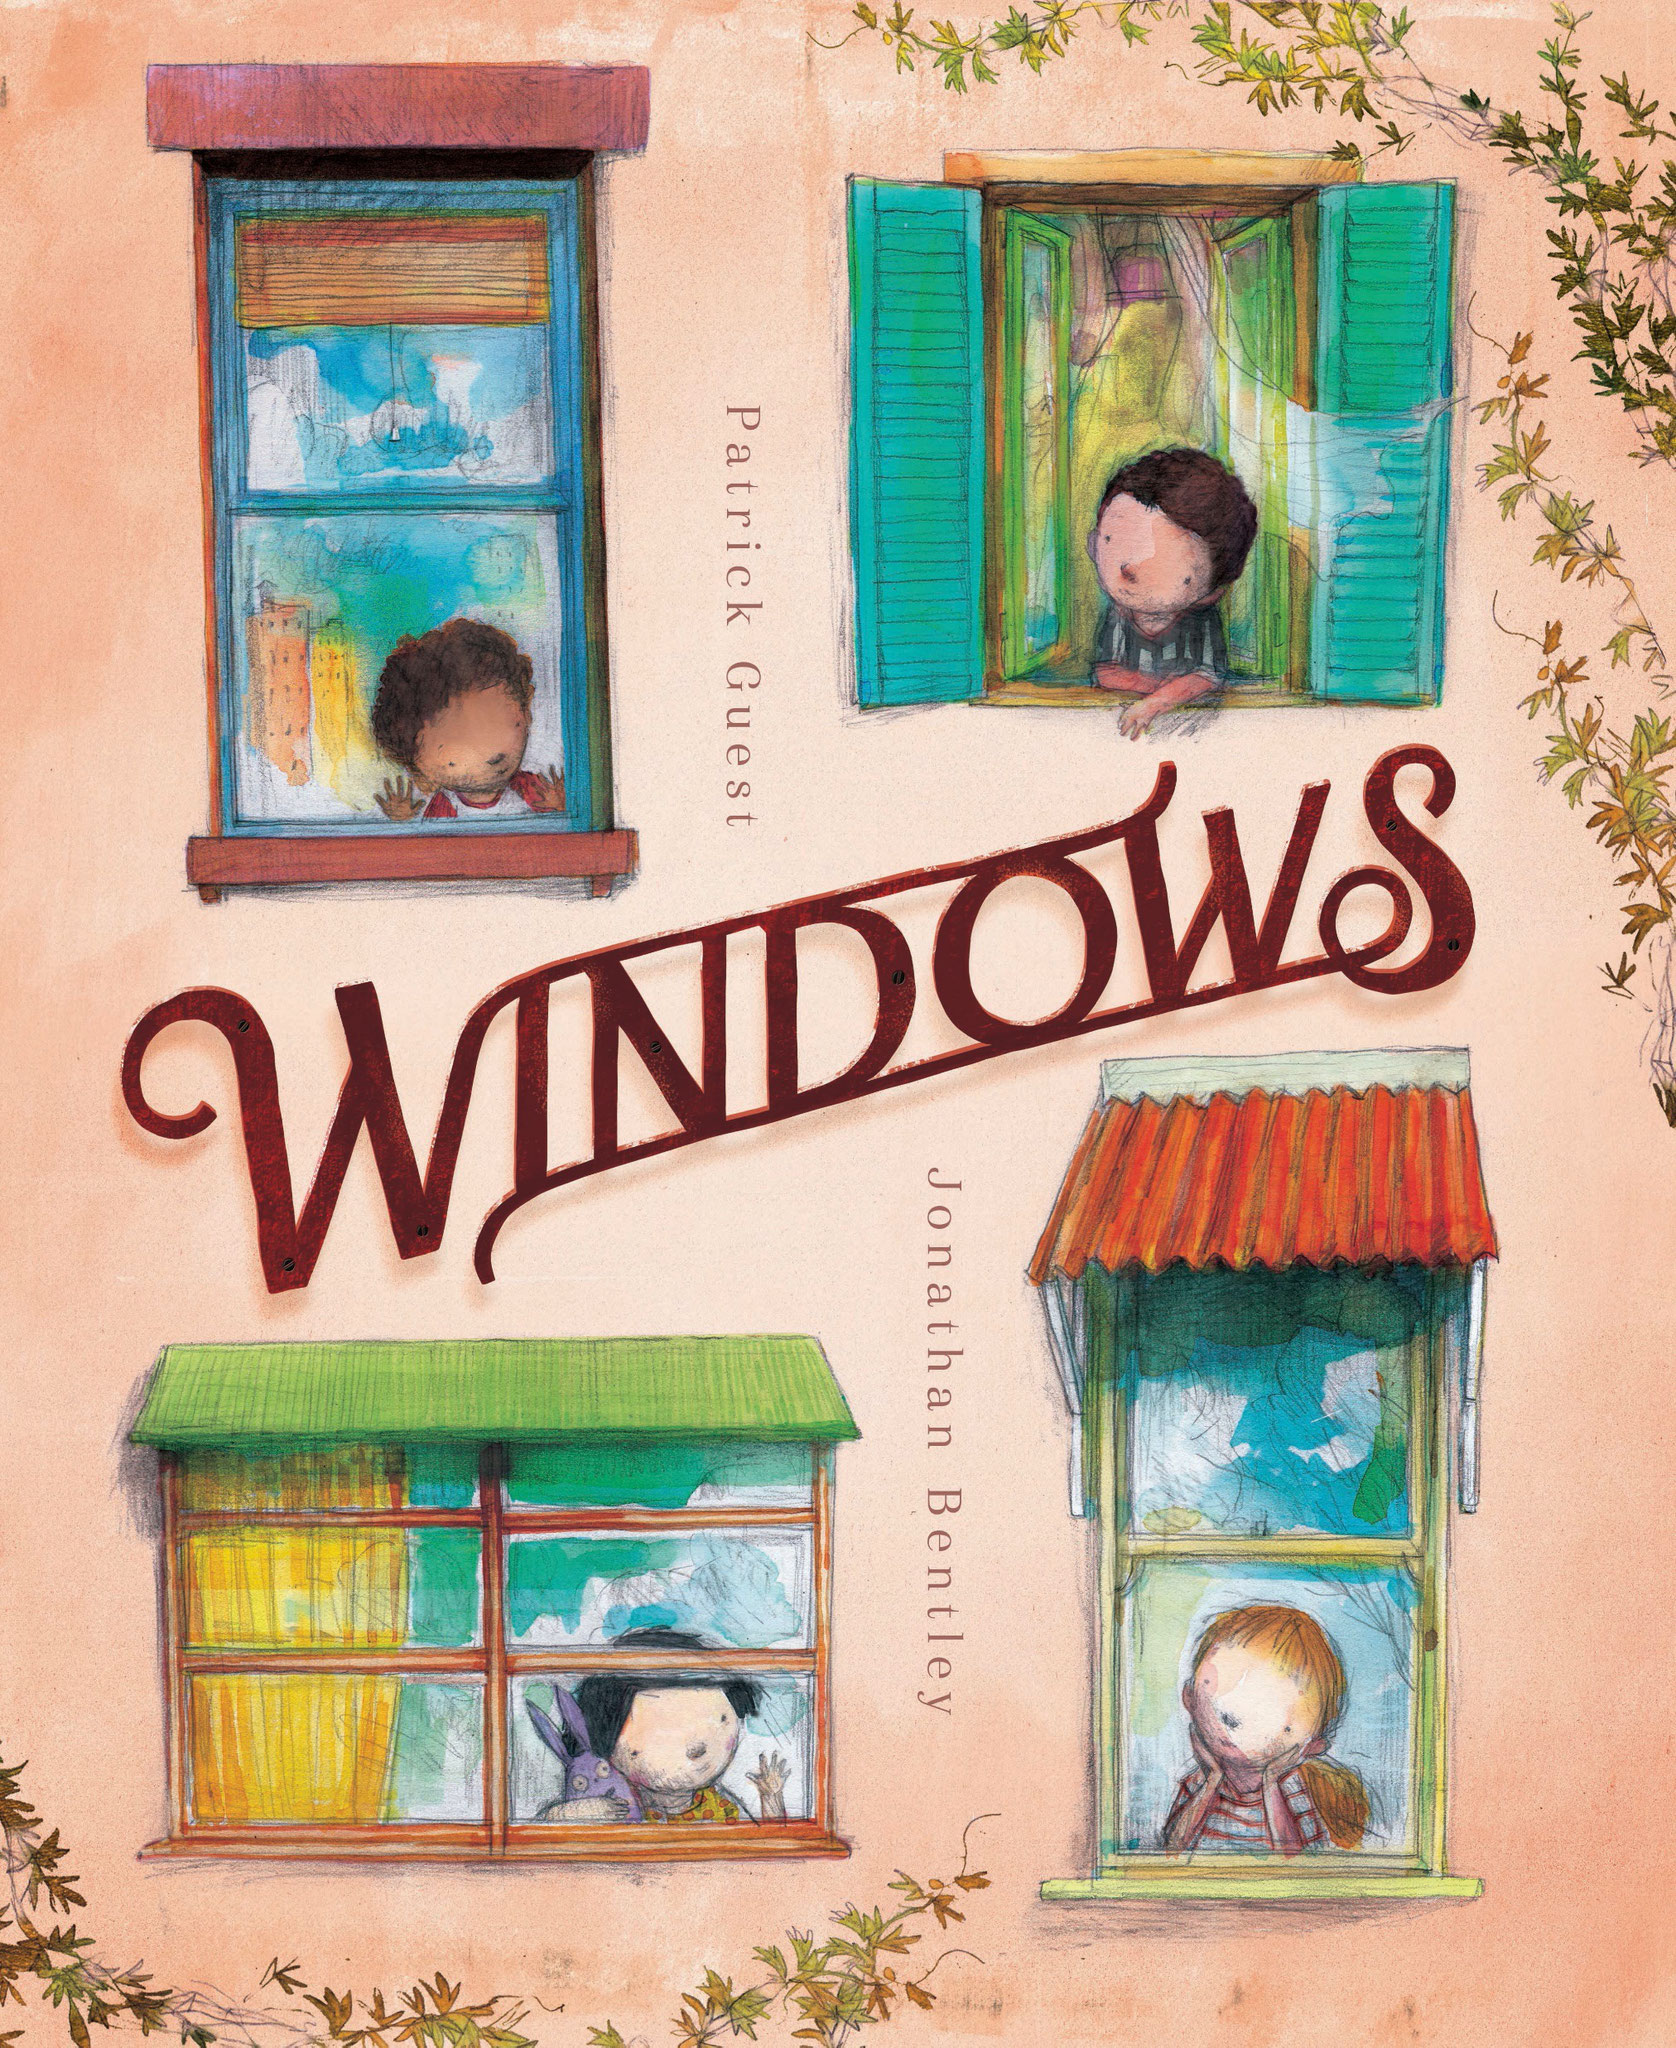 Windows a new book by Patrick and Jonathan Bentley. Click here to see more about the book.